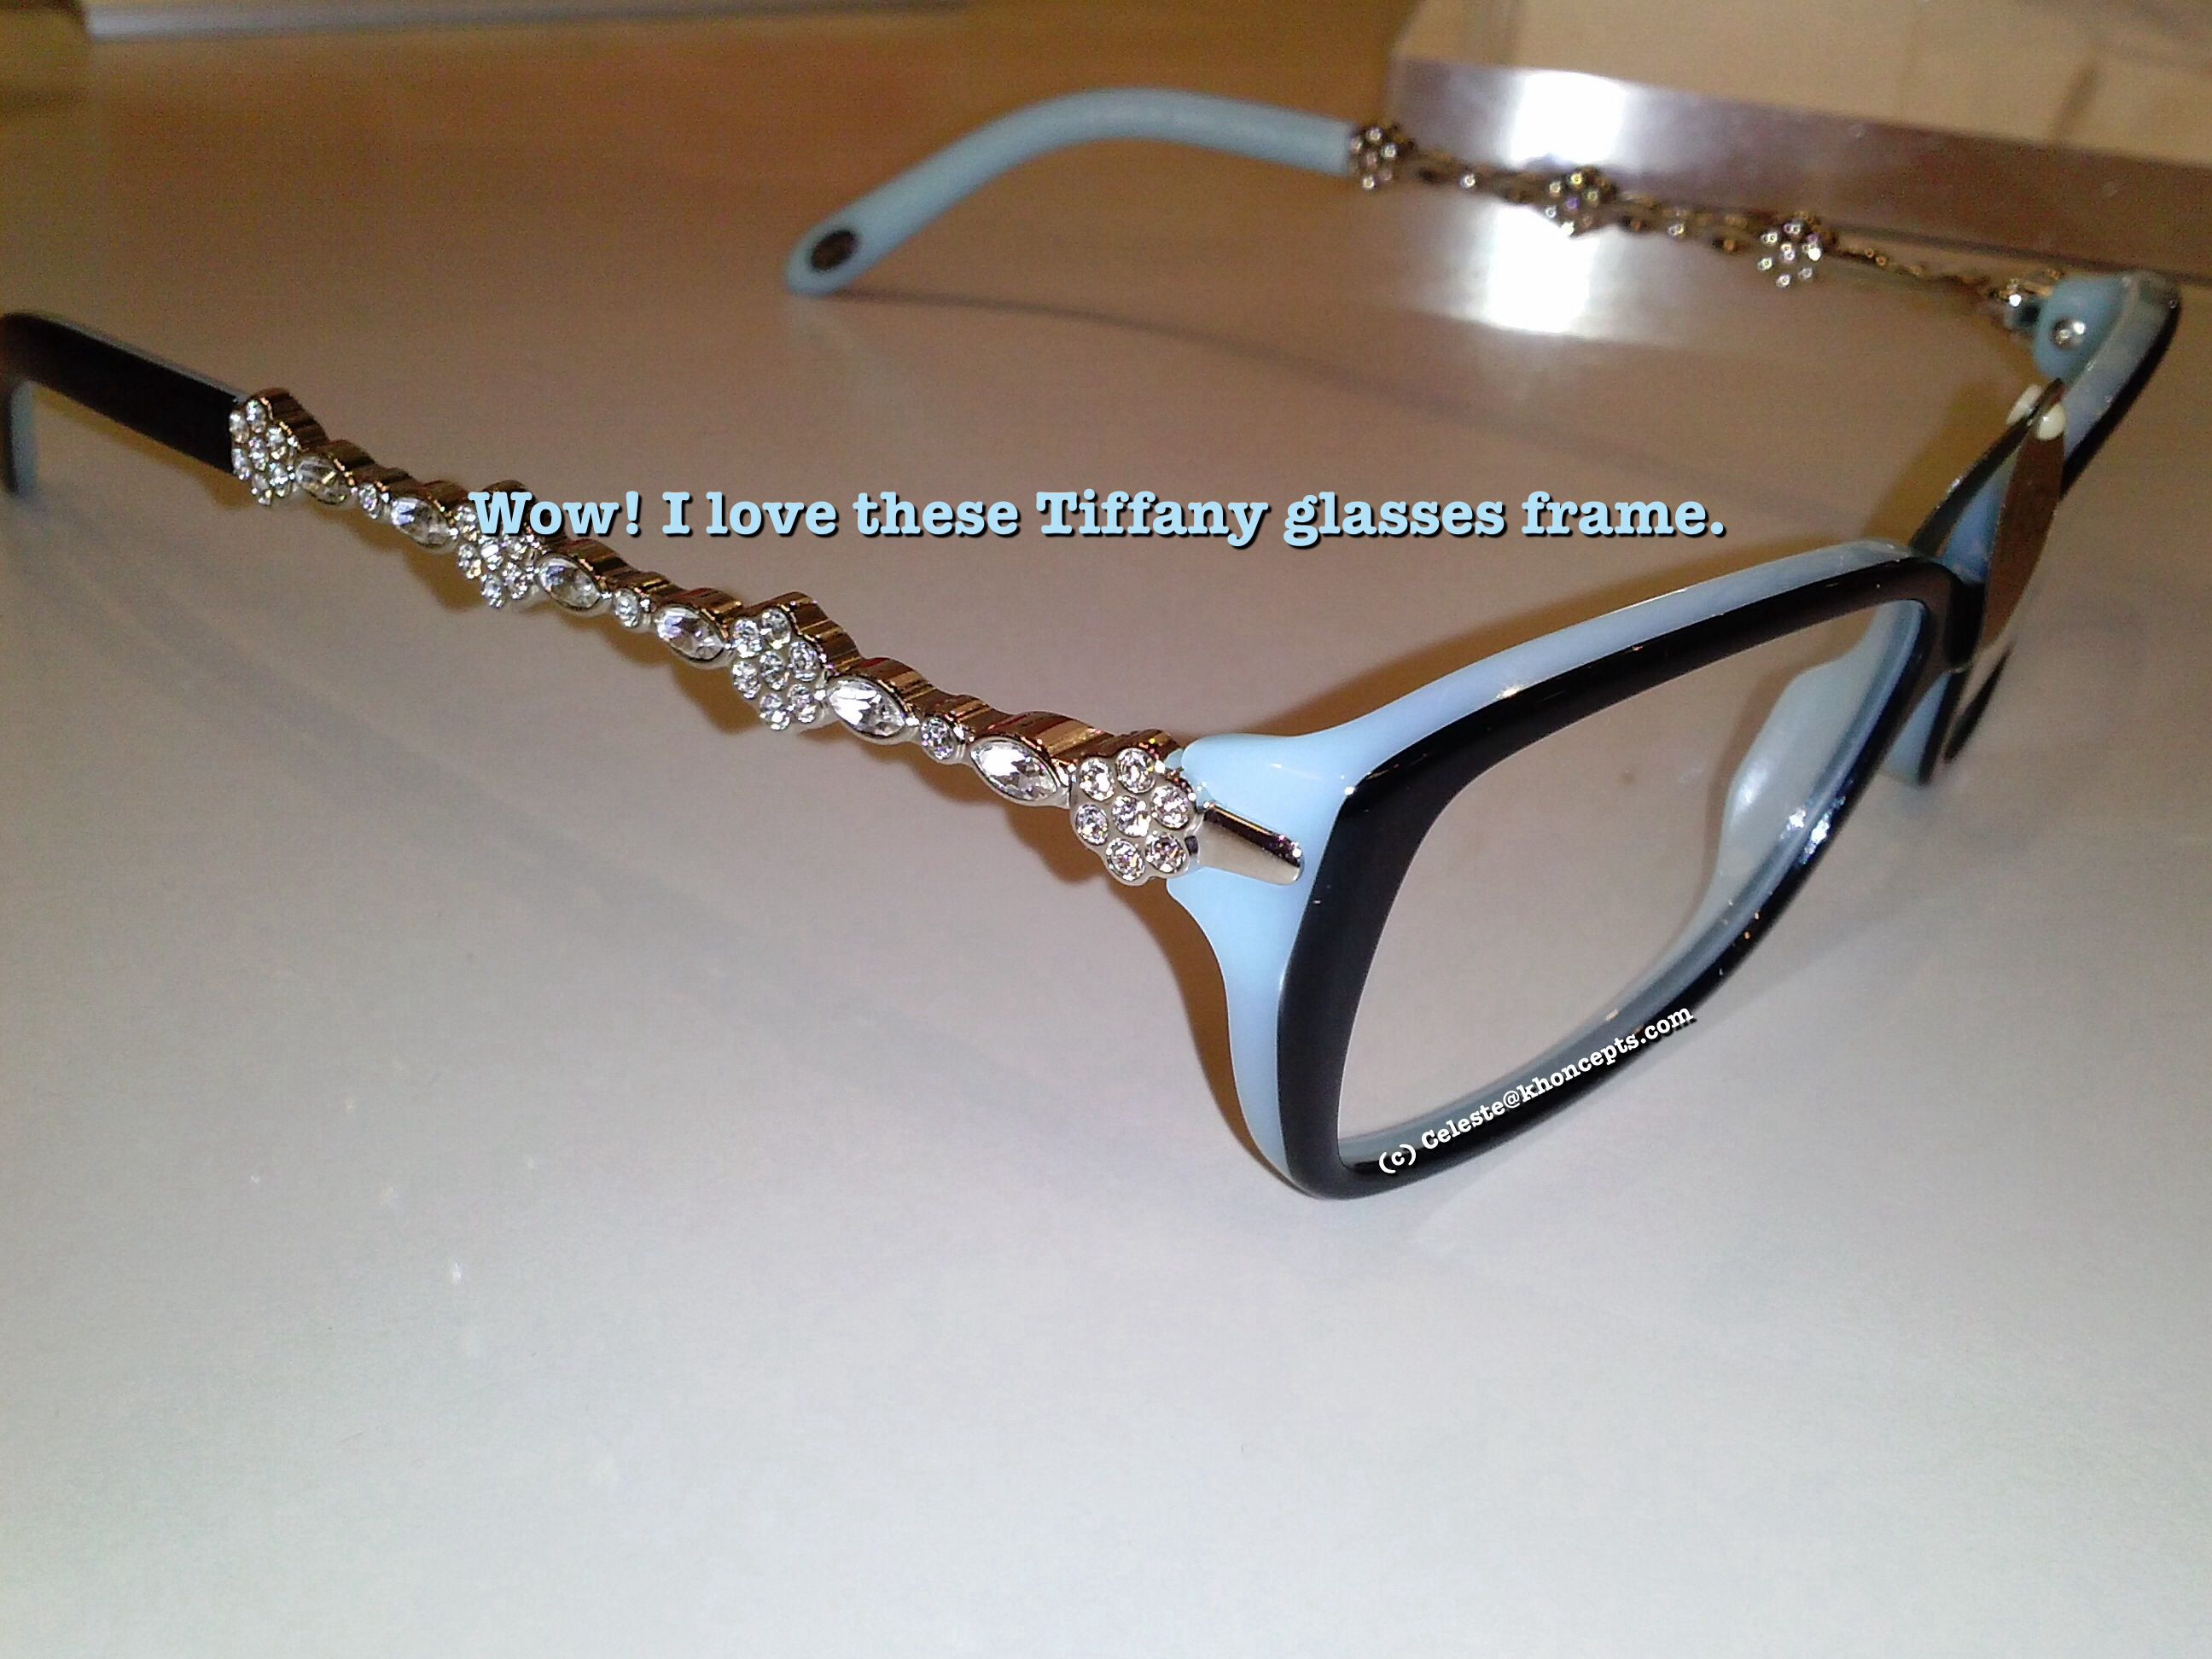 4bb4a61268 Love these bling  Tiffany glasses frames spotted at my eye doctor s office.  Will visit Tiffany and Co online to see what they have.